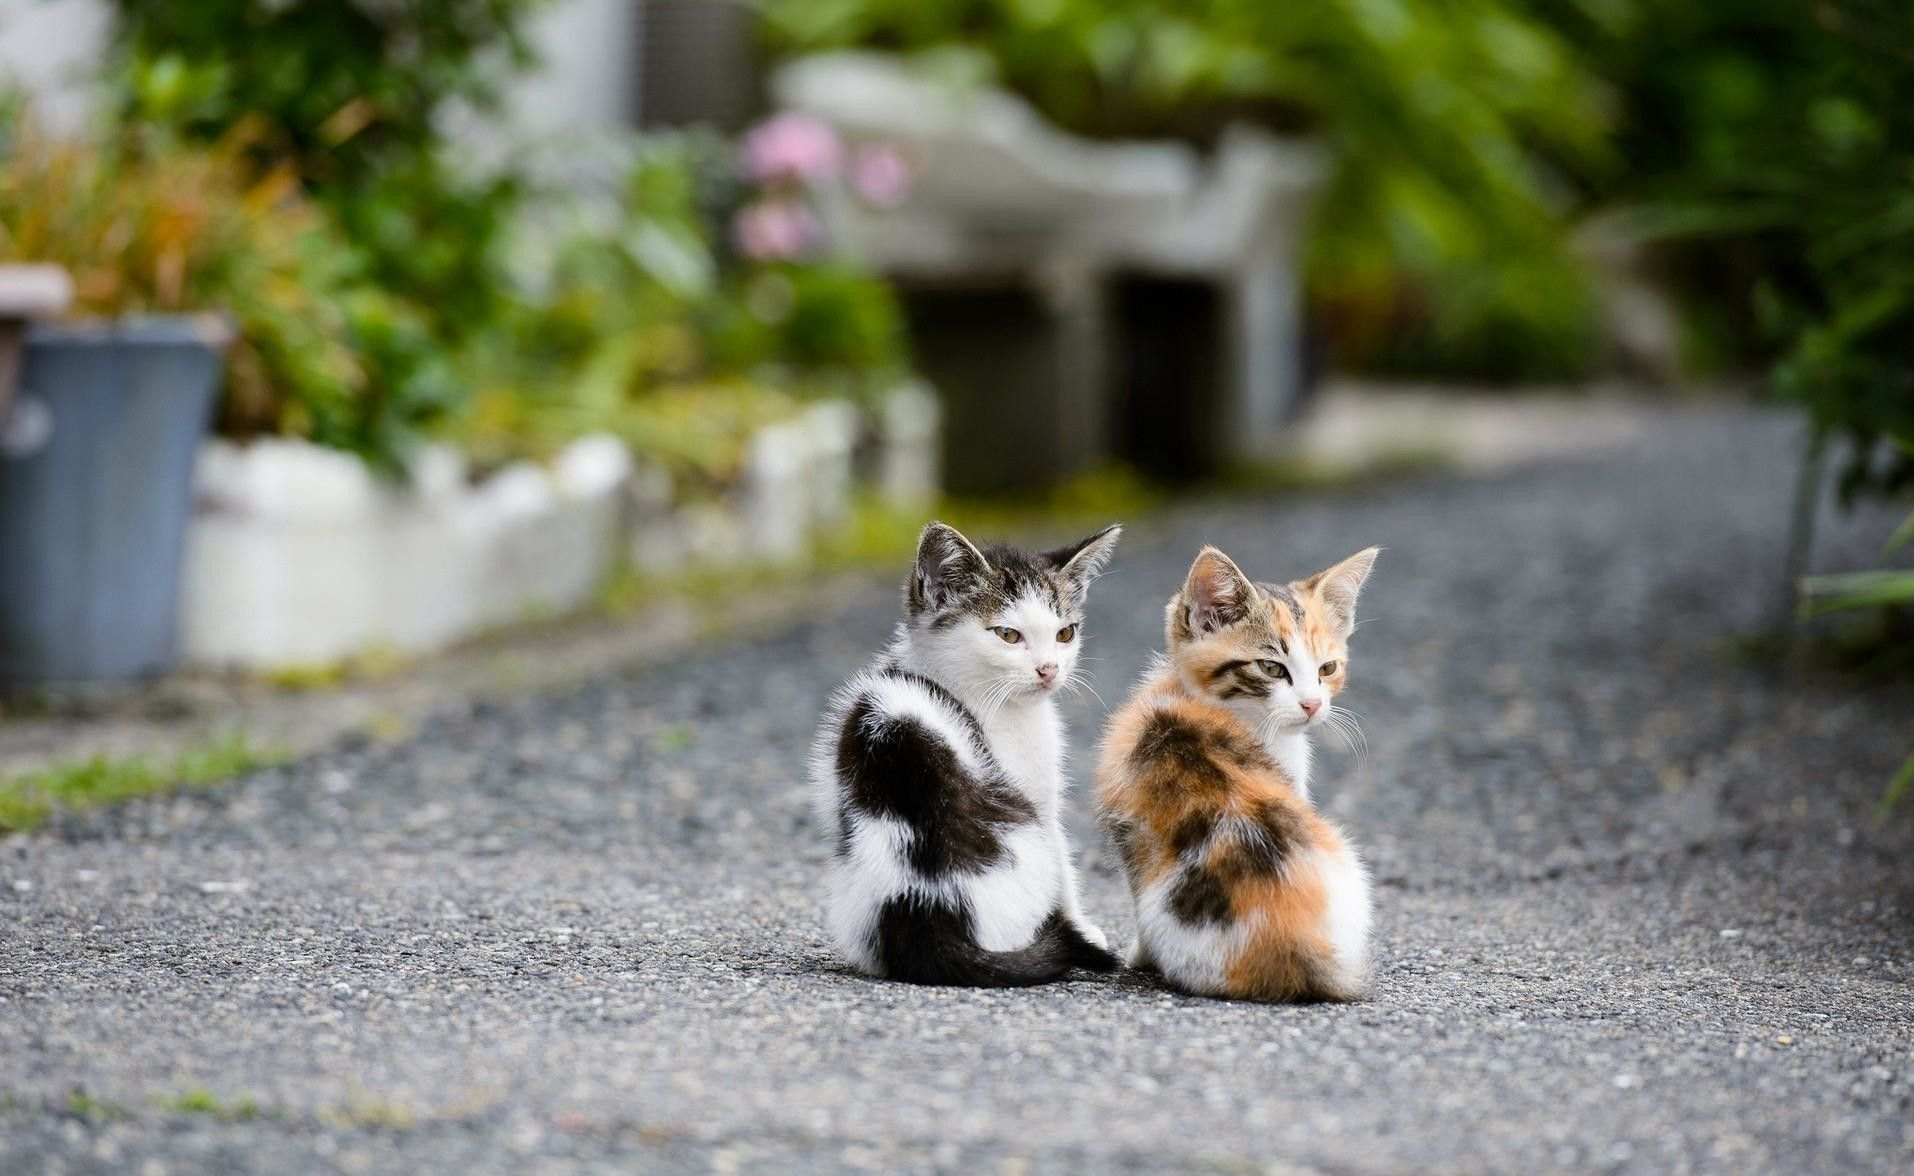 Buy Healthy Kittens Cats For Sale In India Cats For Adoption In